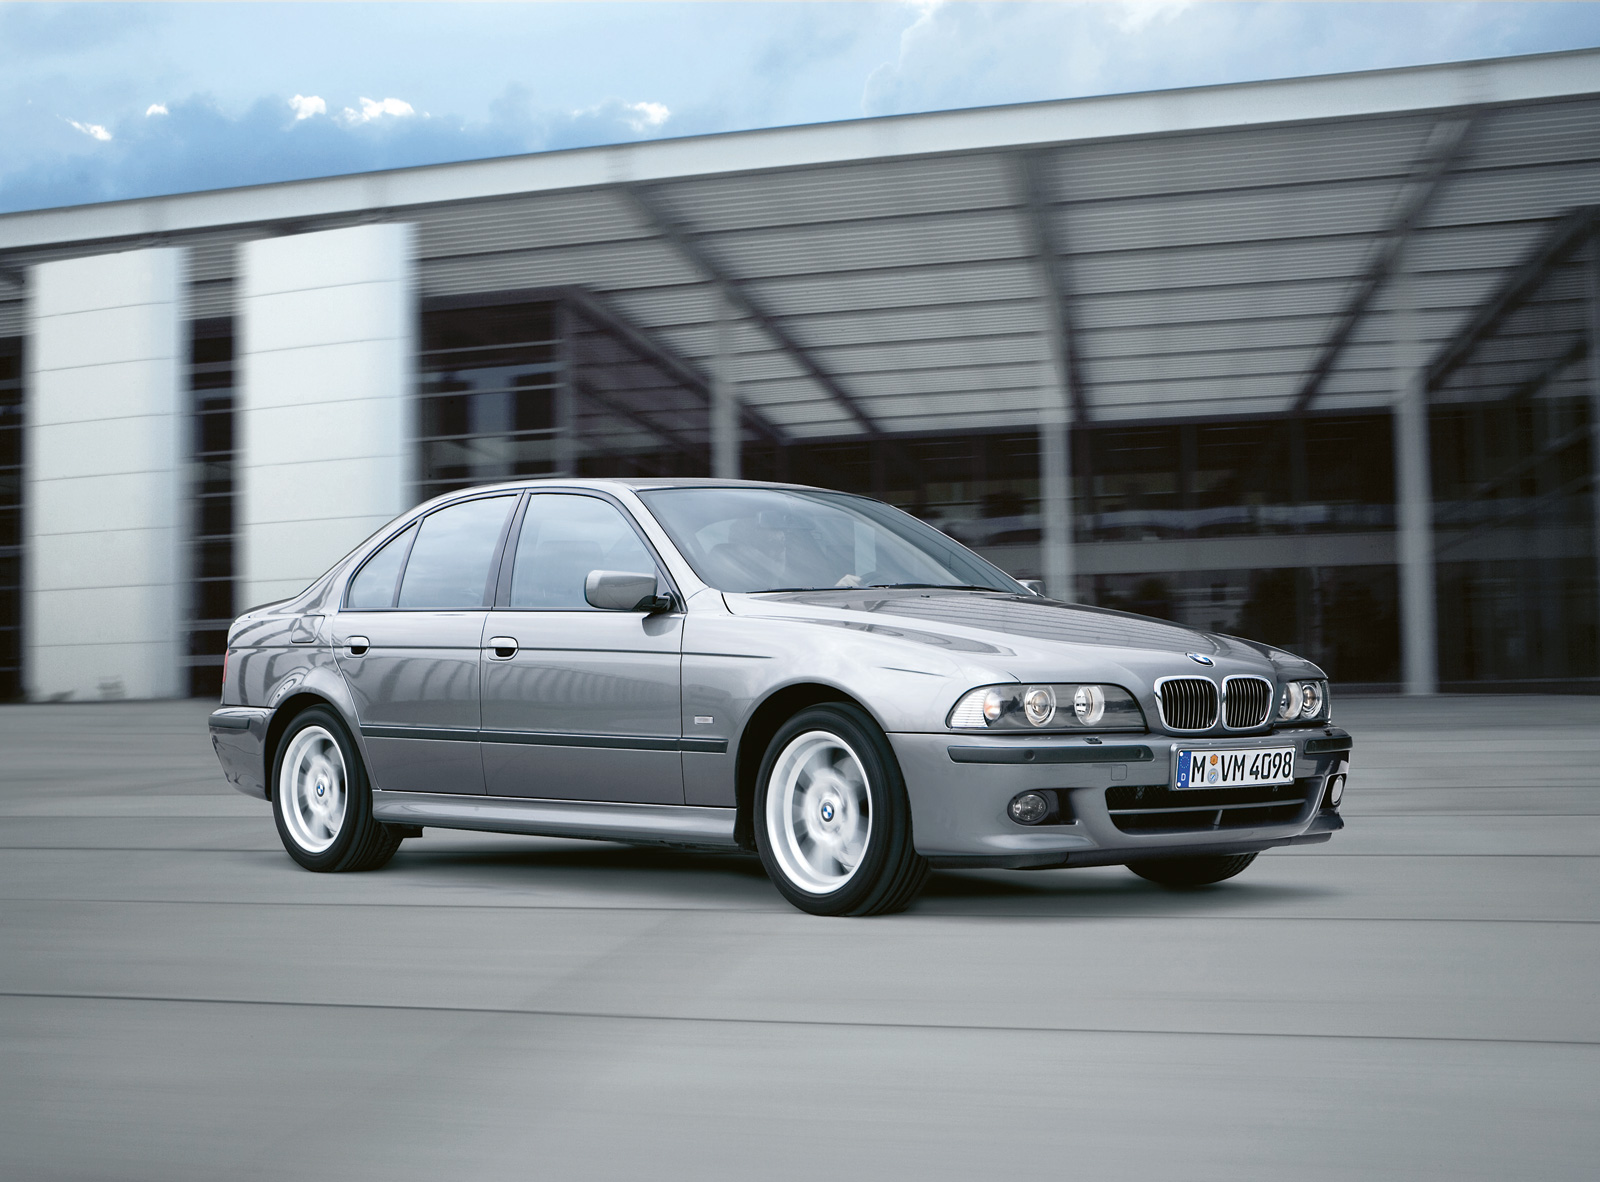 Bmw 535i 1997 Review Amazing Pictures And Images Look